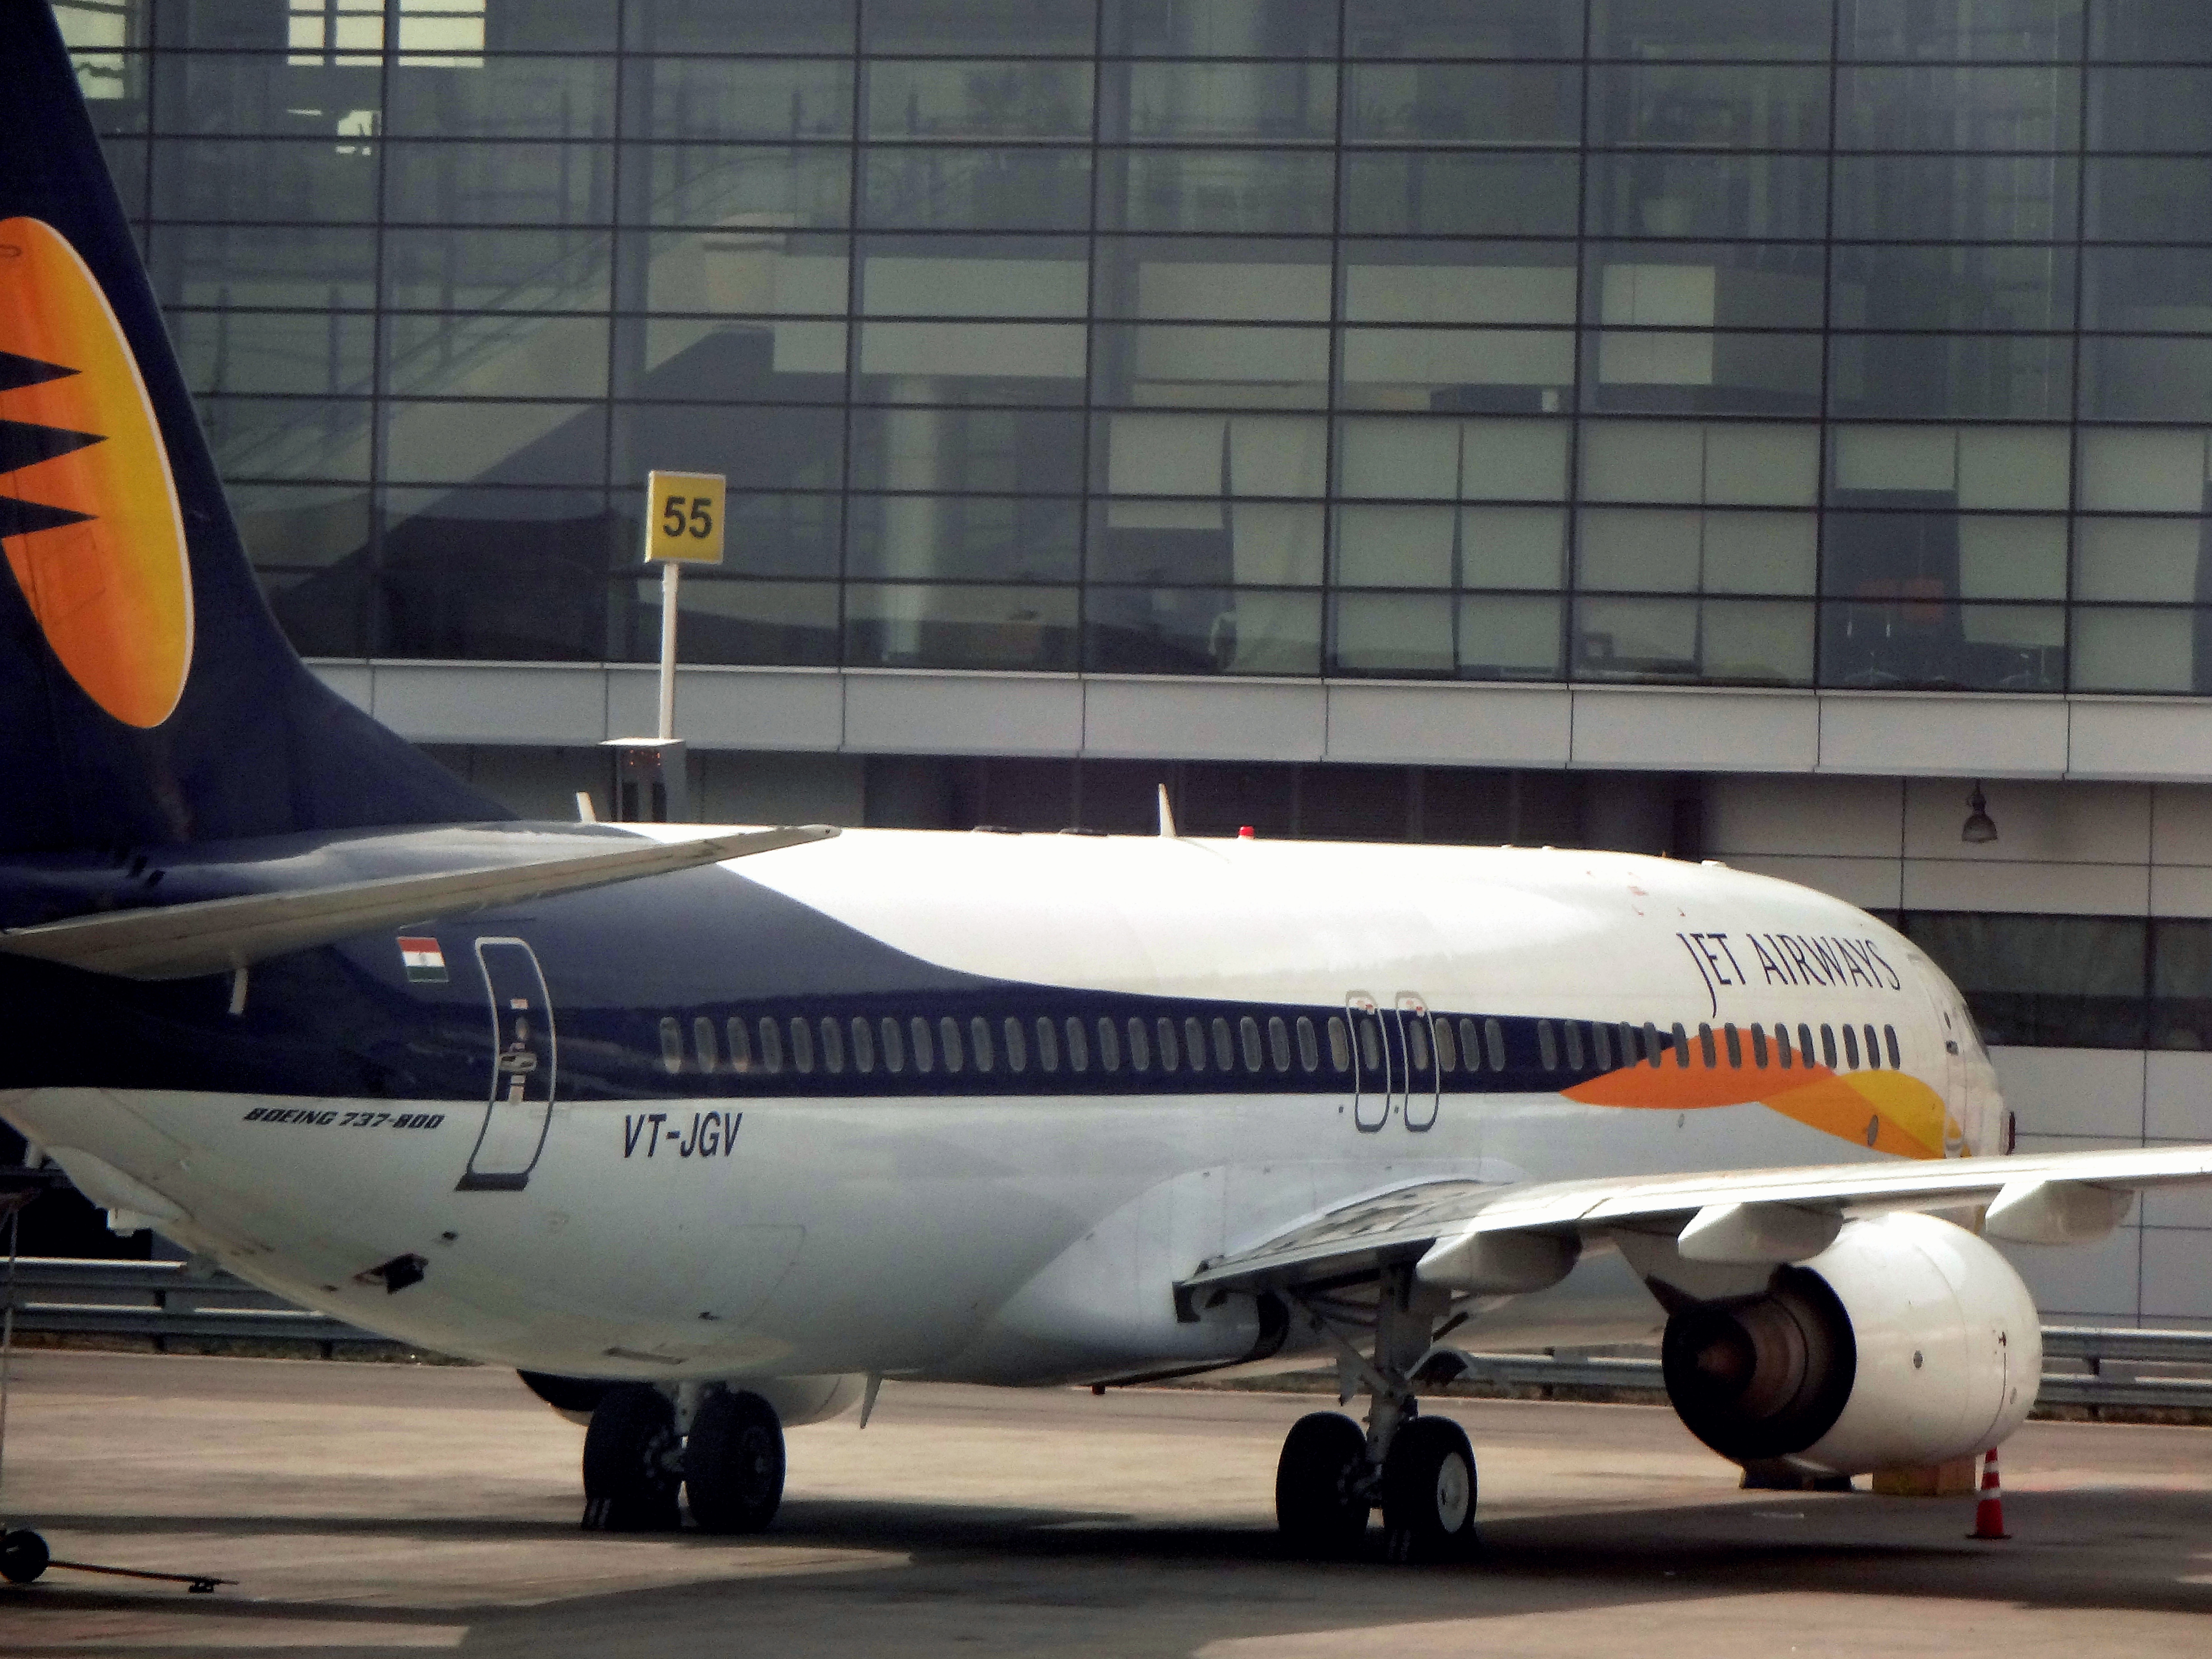 Boeing Jet Jet Airways Boeing 737-800